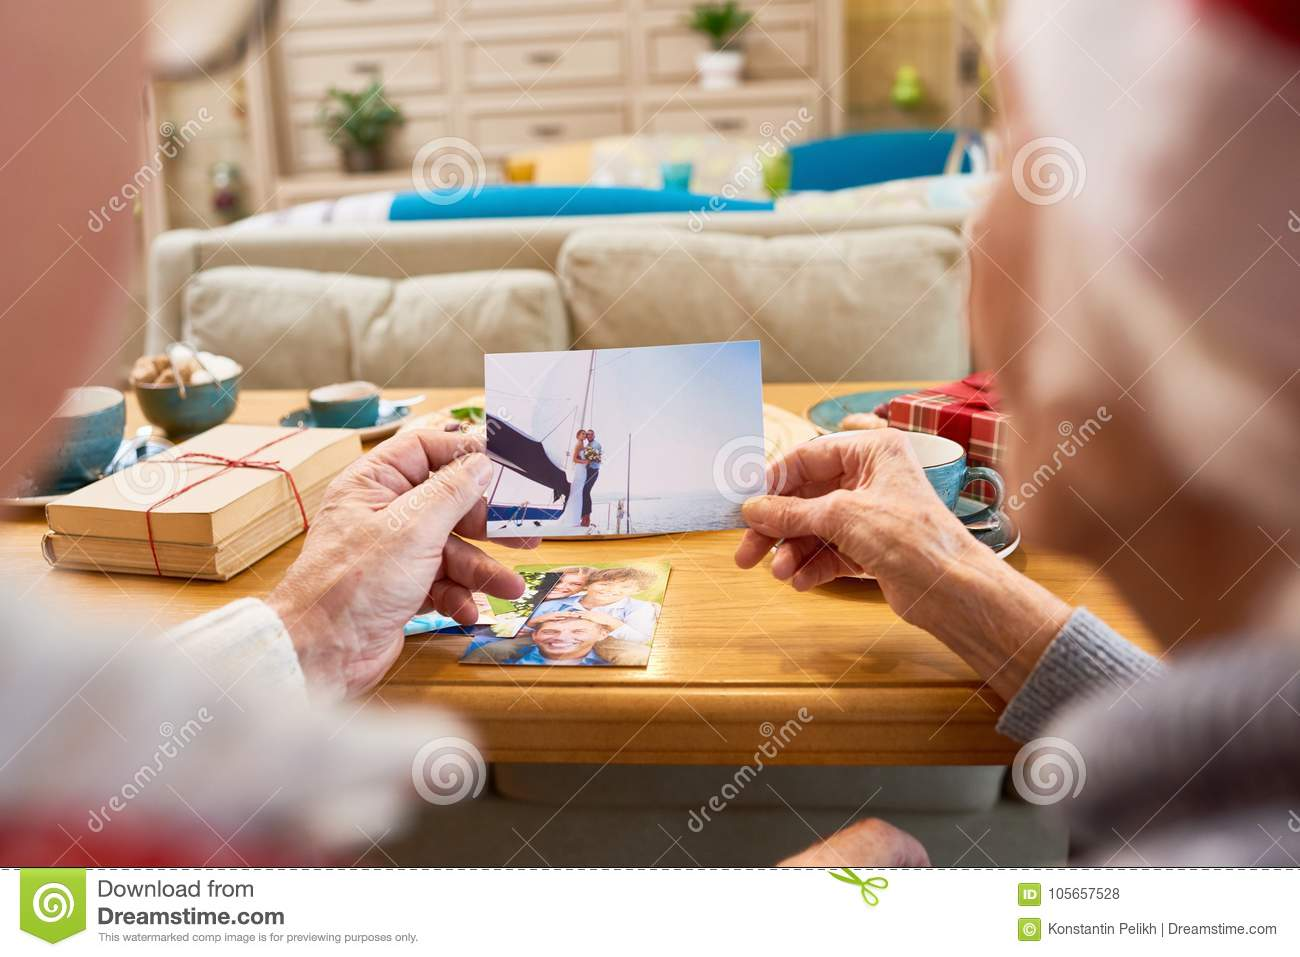 Elderly People Looking at Photos